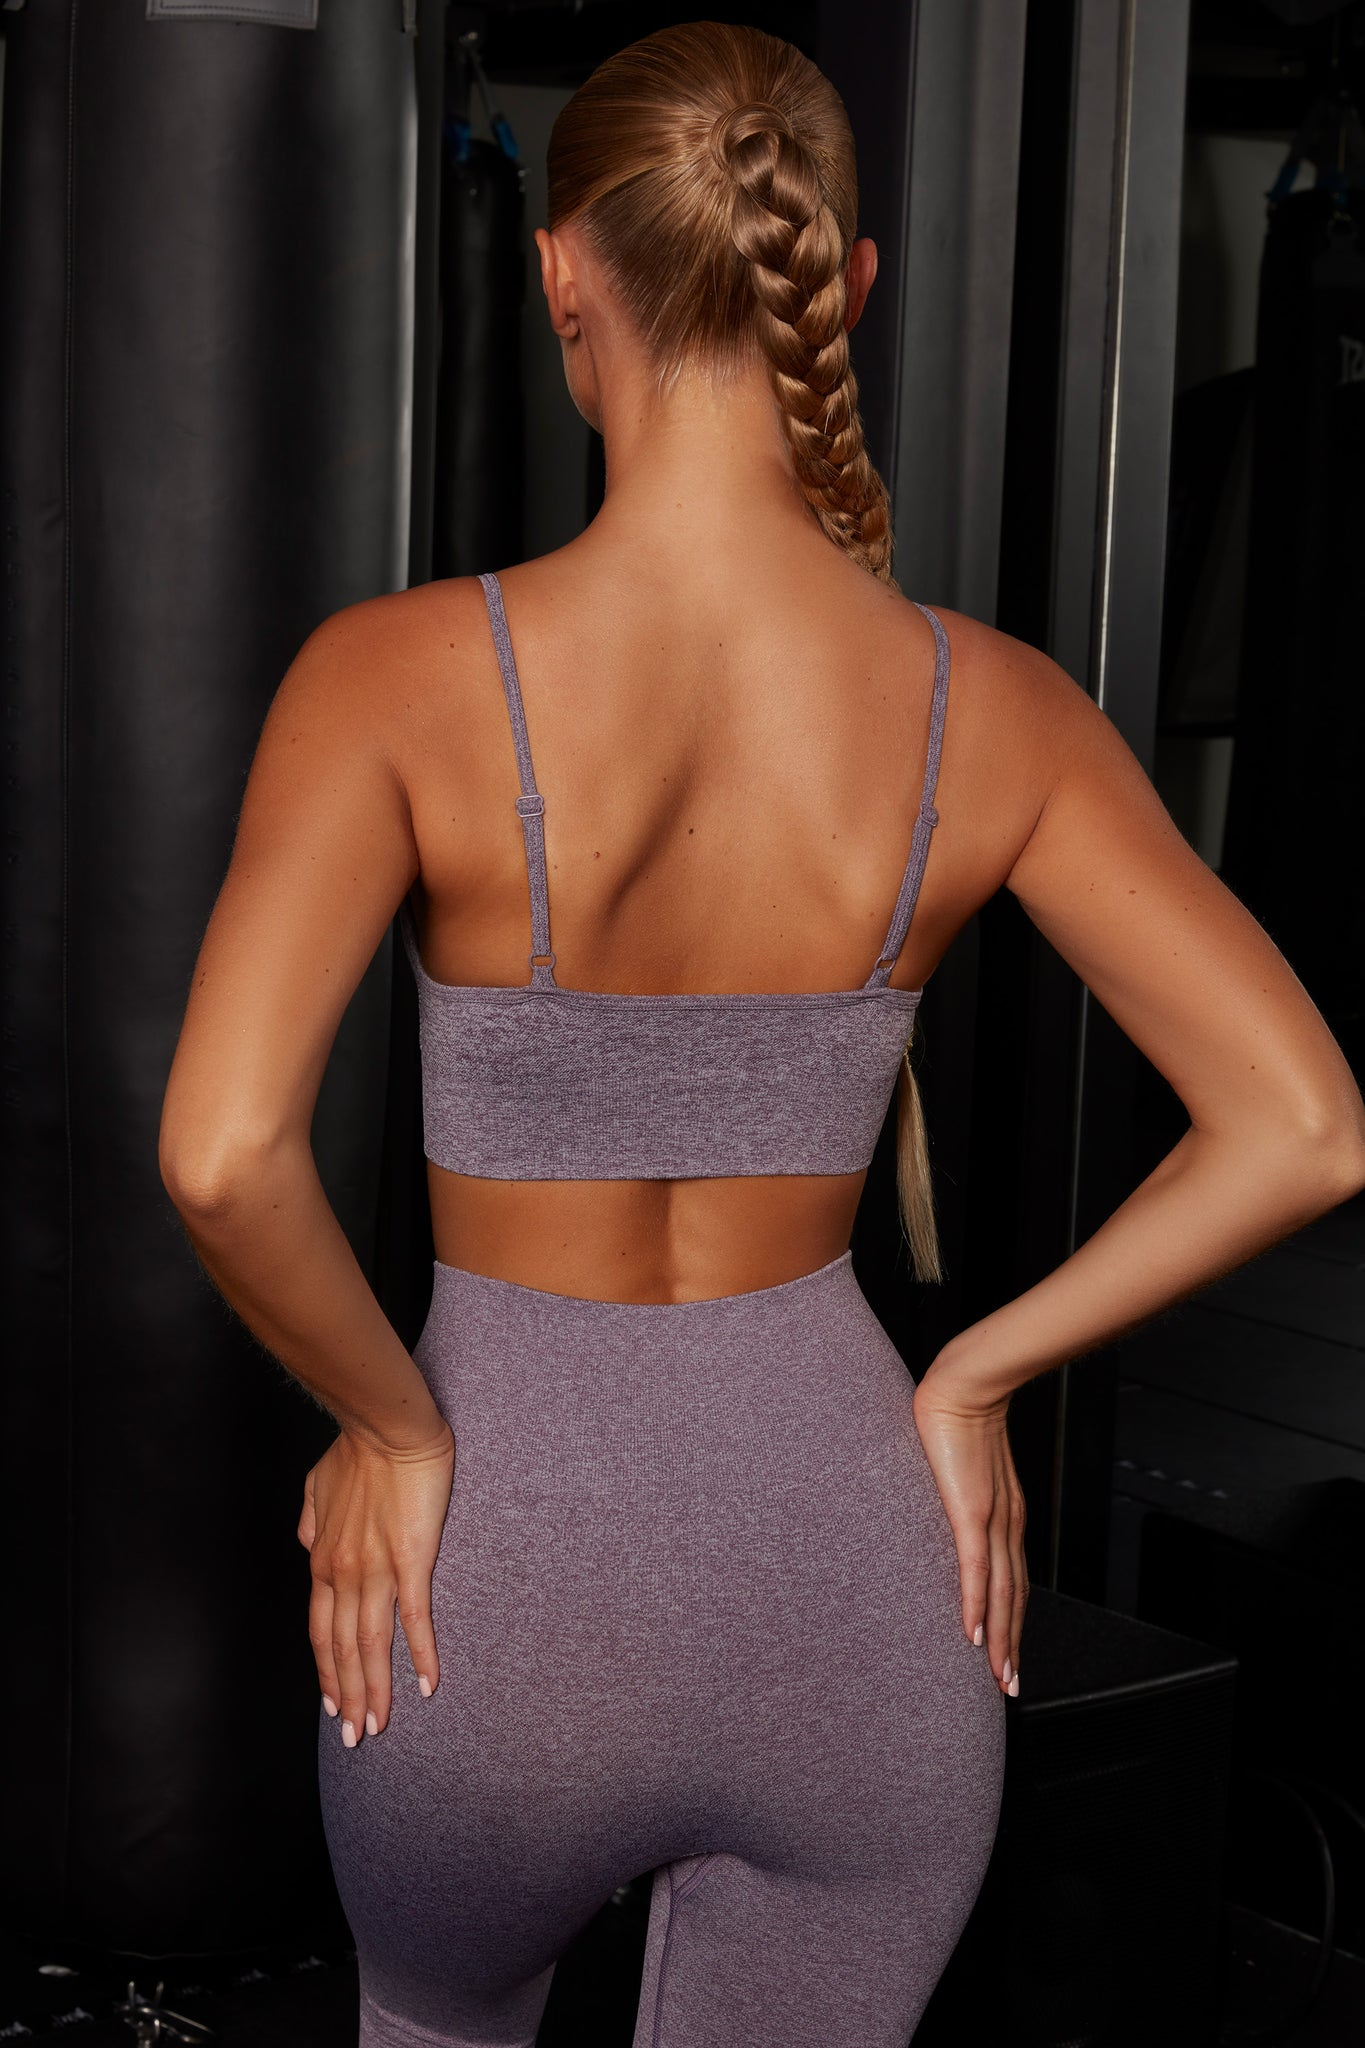 Plain purple melange V neck sports bra with ribbed underband, reflective branding and thin adjustable straps. Image 3 of 6.